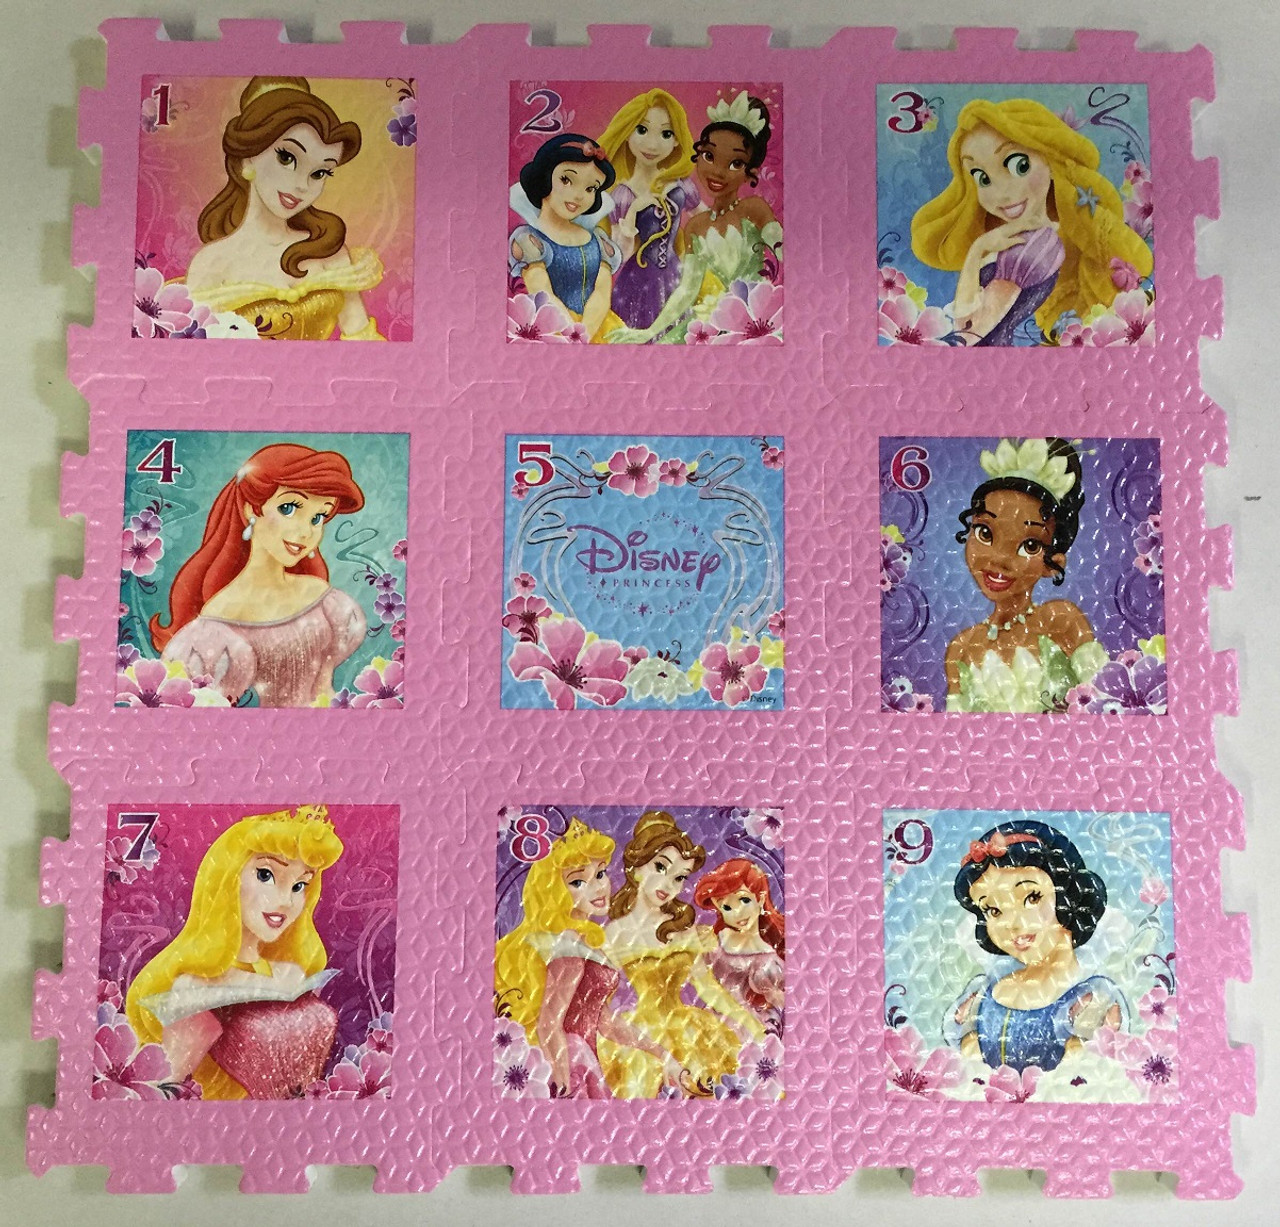 6676b952a214 Disney Princesses - 9pc Foam Floor Puzzle by What Kids Want